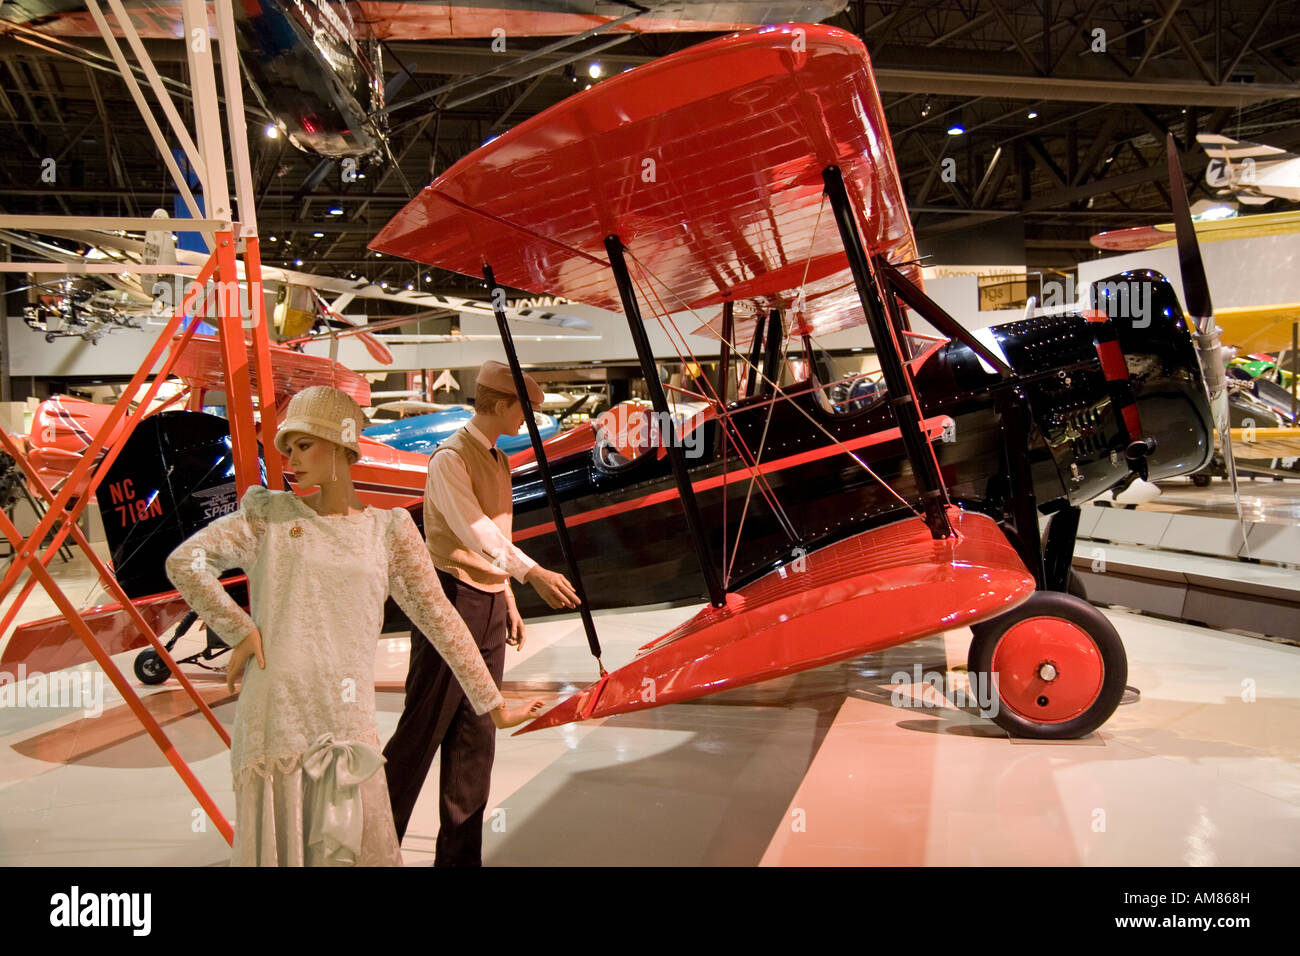 Wisconsin USA Oshkosh Air Venture Experimental Aviation Association EAA Museum Classic era biplane November 2006 Stock Photo